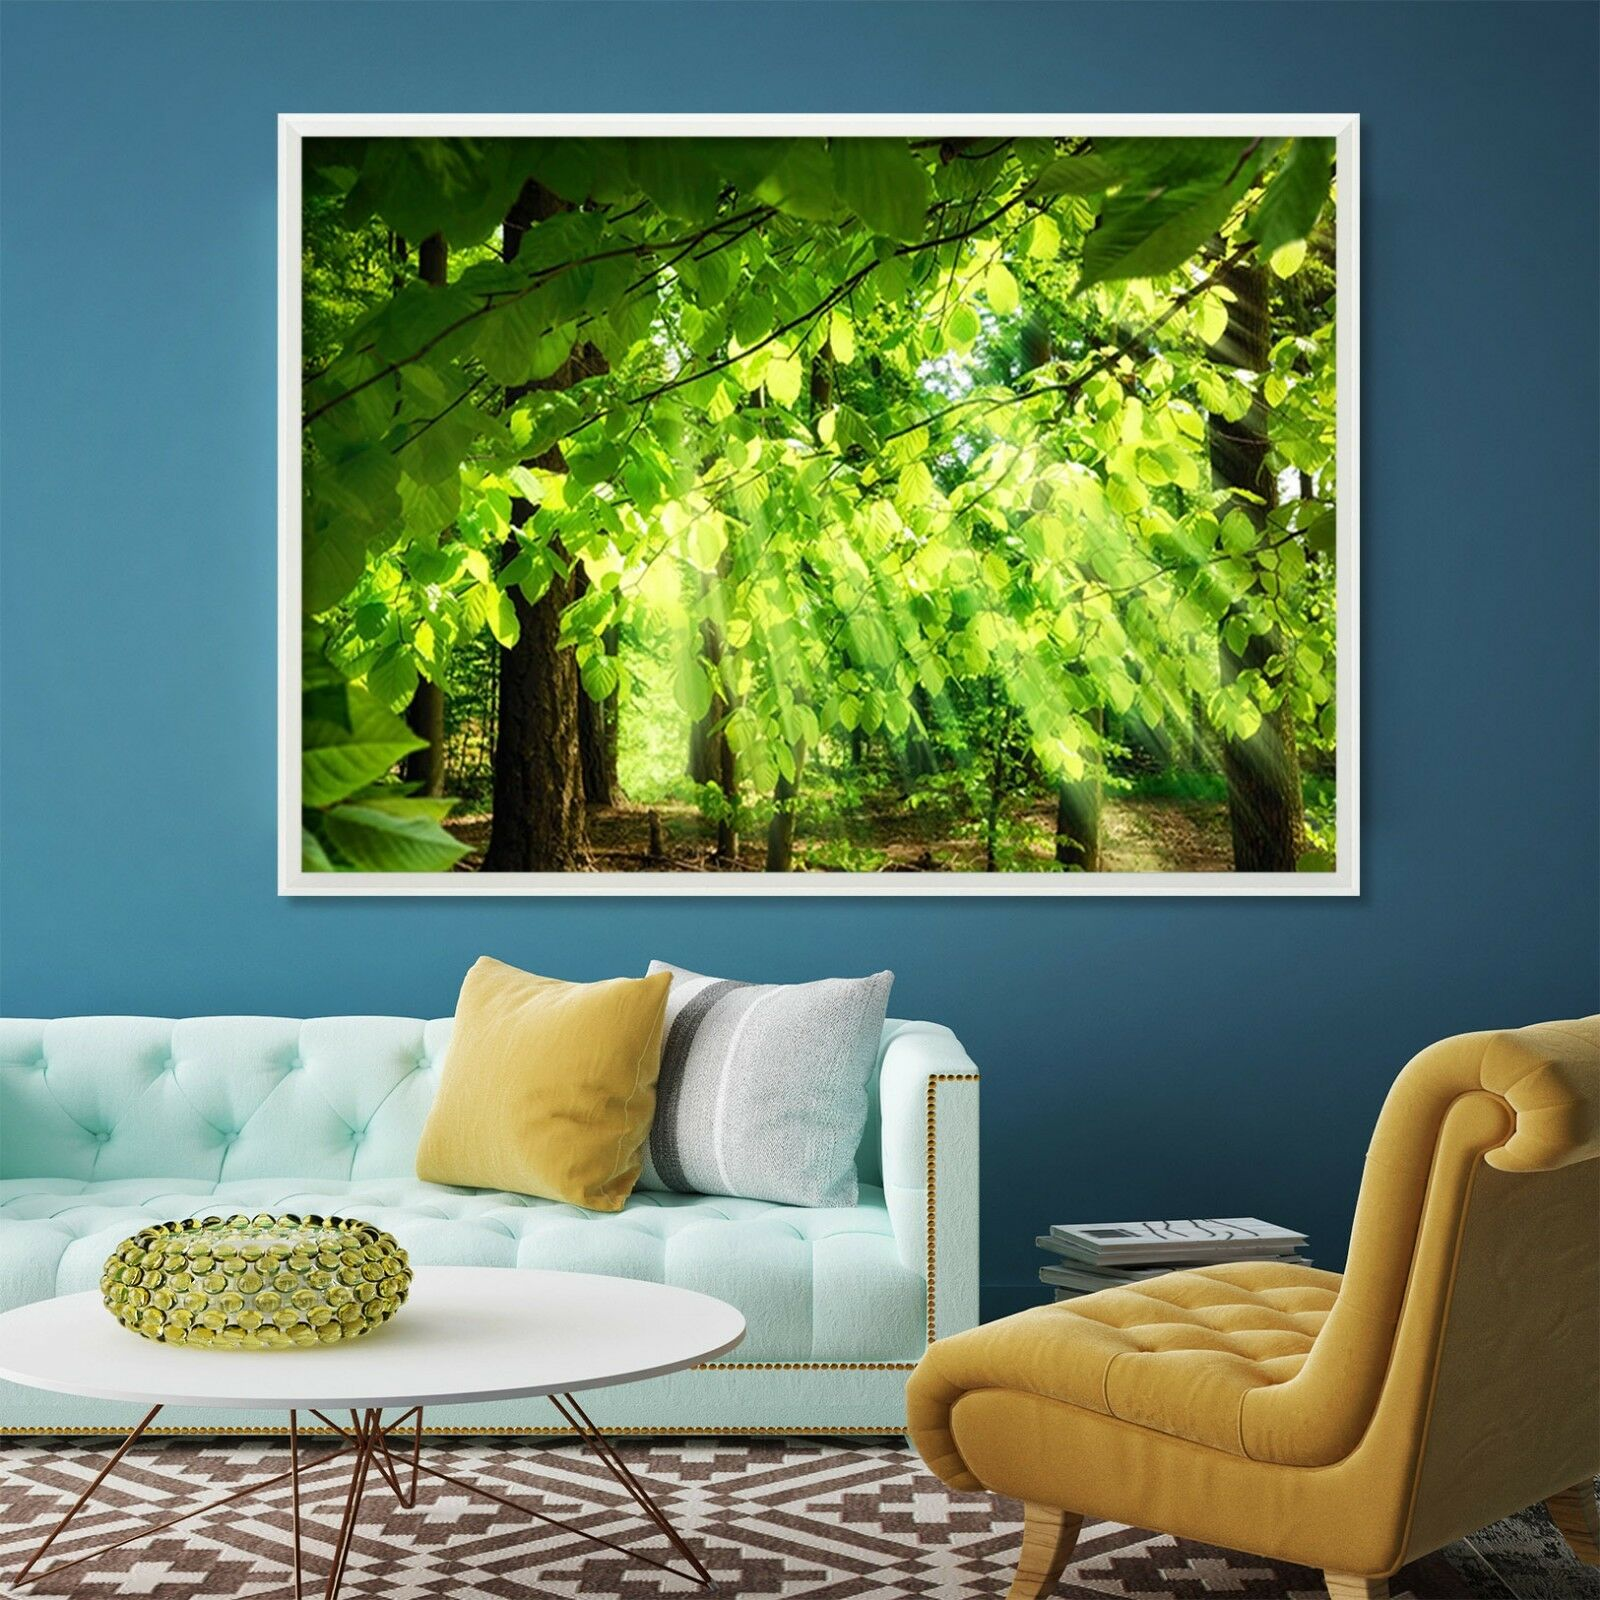 3D Green Leaves 6 Framed Poster Home Decor Print Painting Art AJ WALLPAPER